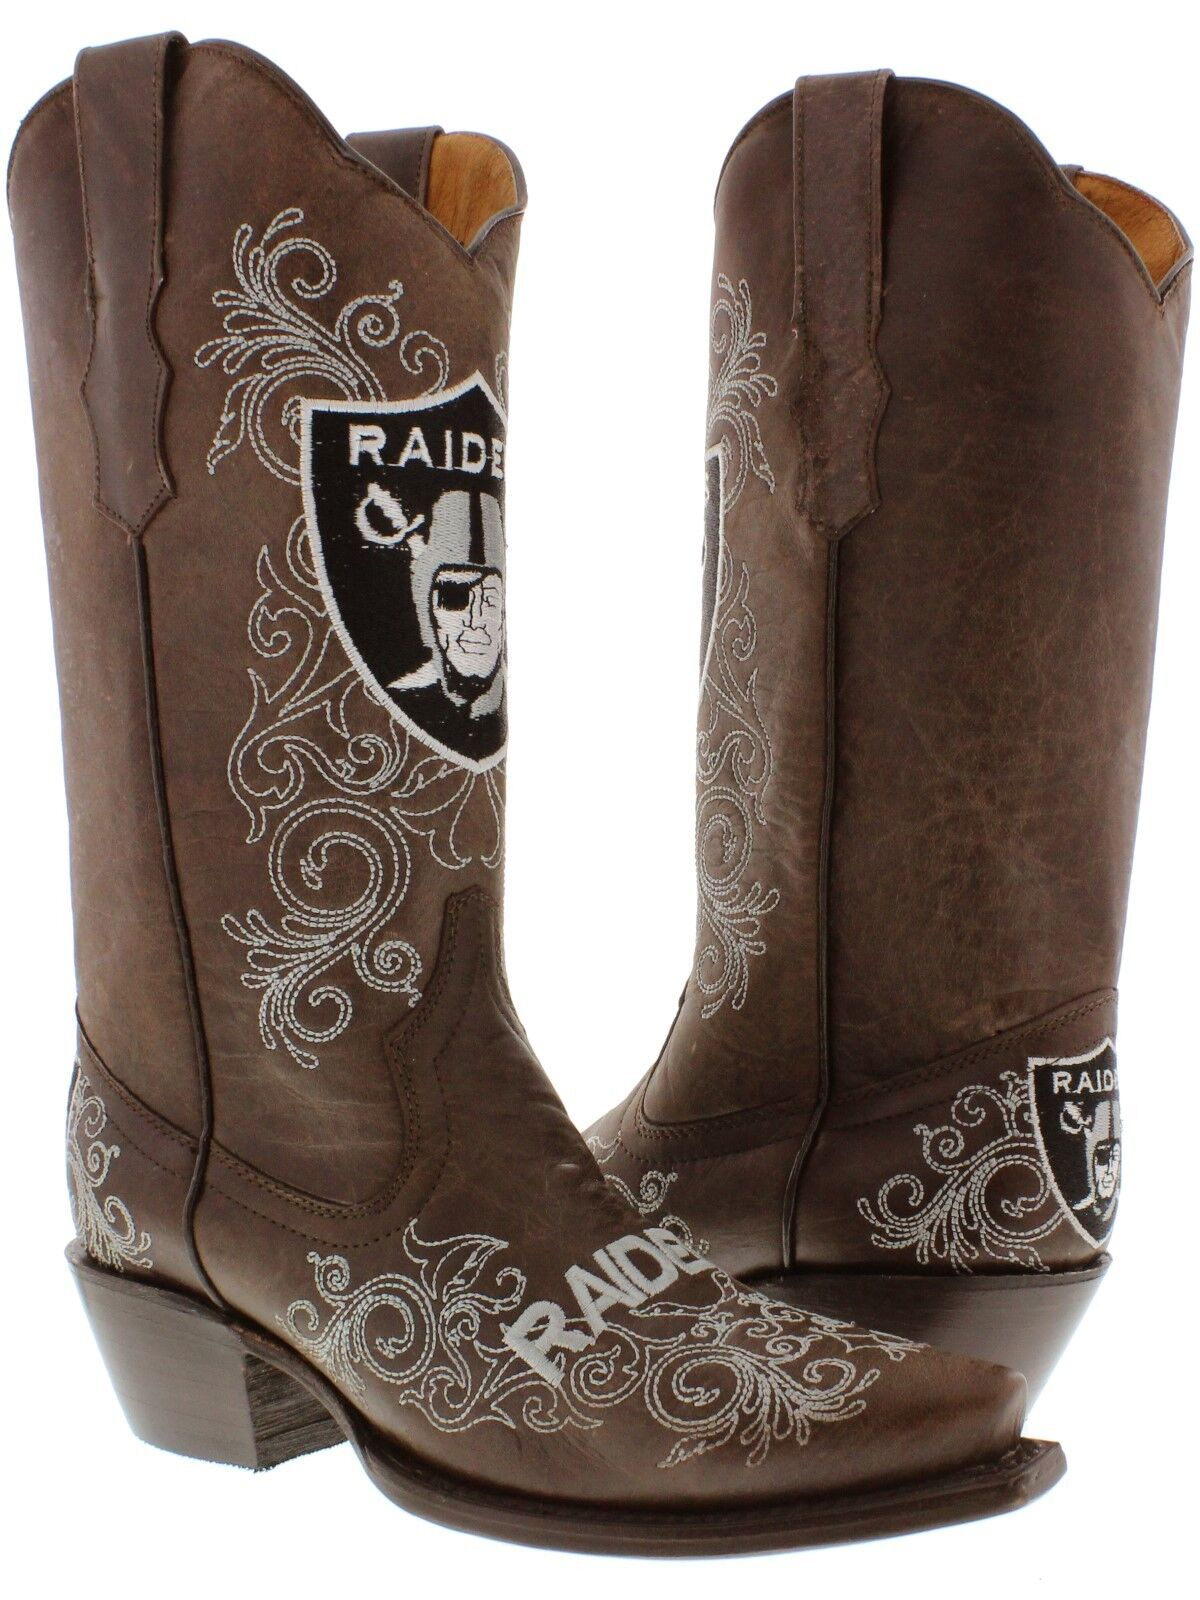 Brown Oakland Raider Rodeo Riding Leather Cowboy Boots Western Snip Toe new